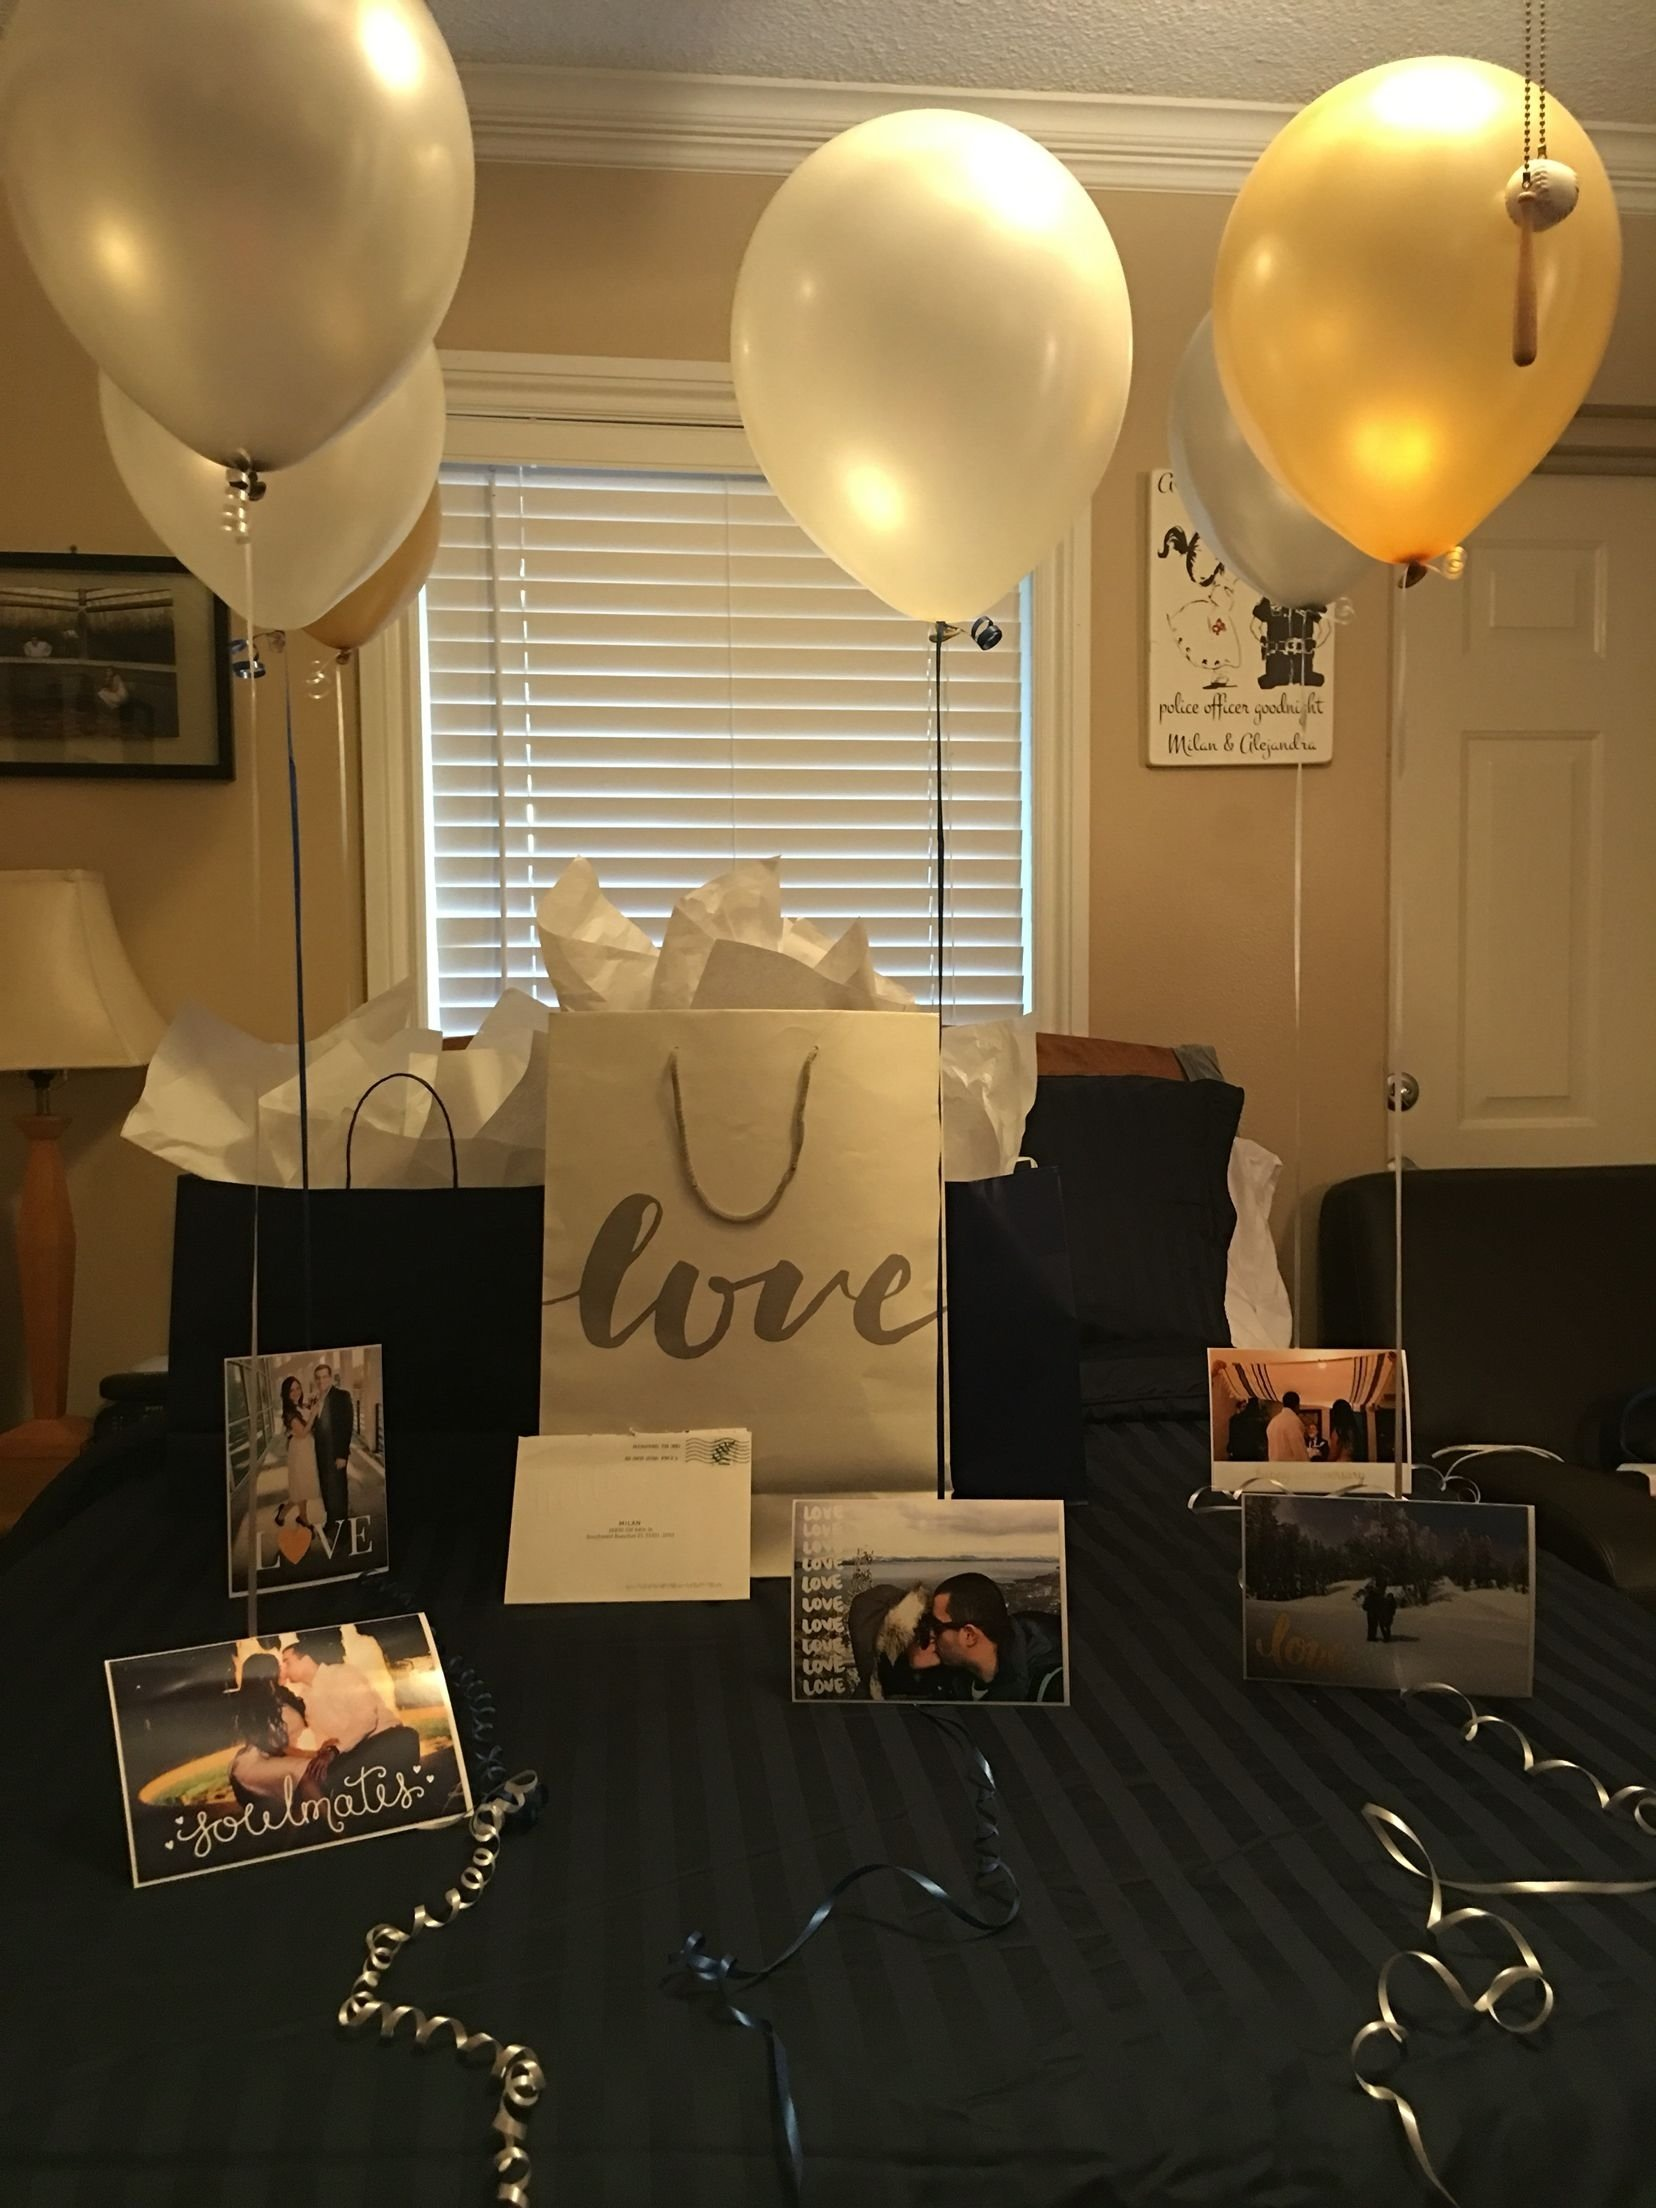 10 Most Recommended Romantic Ideas For Boyfriends Birthday one year anniversary pinteres 4